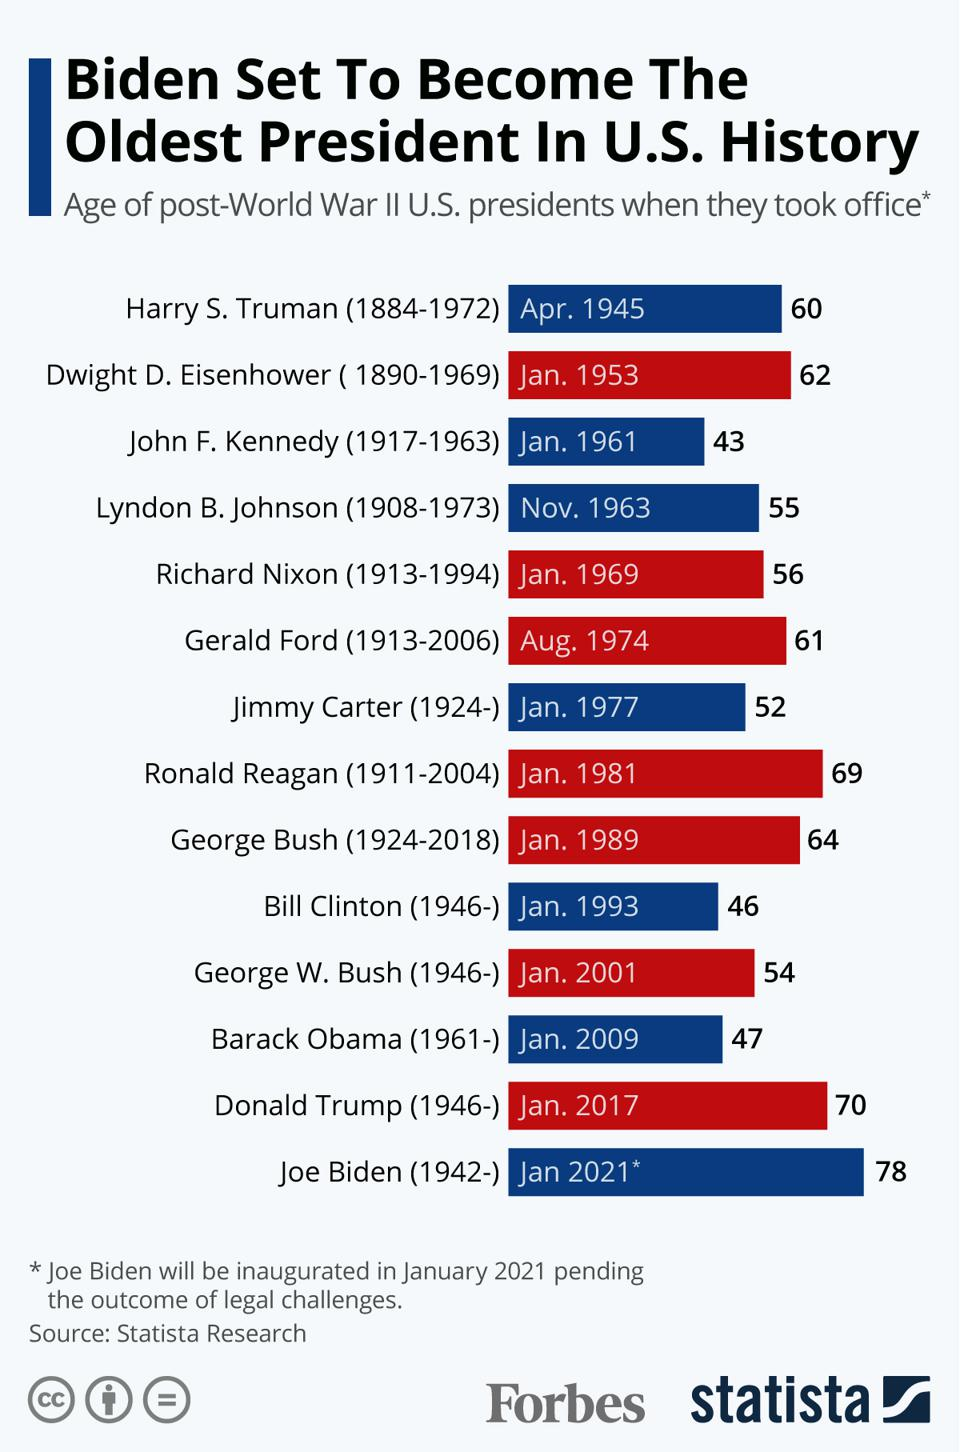 Biden Set To Become The Oldest President In U.S. History